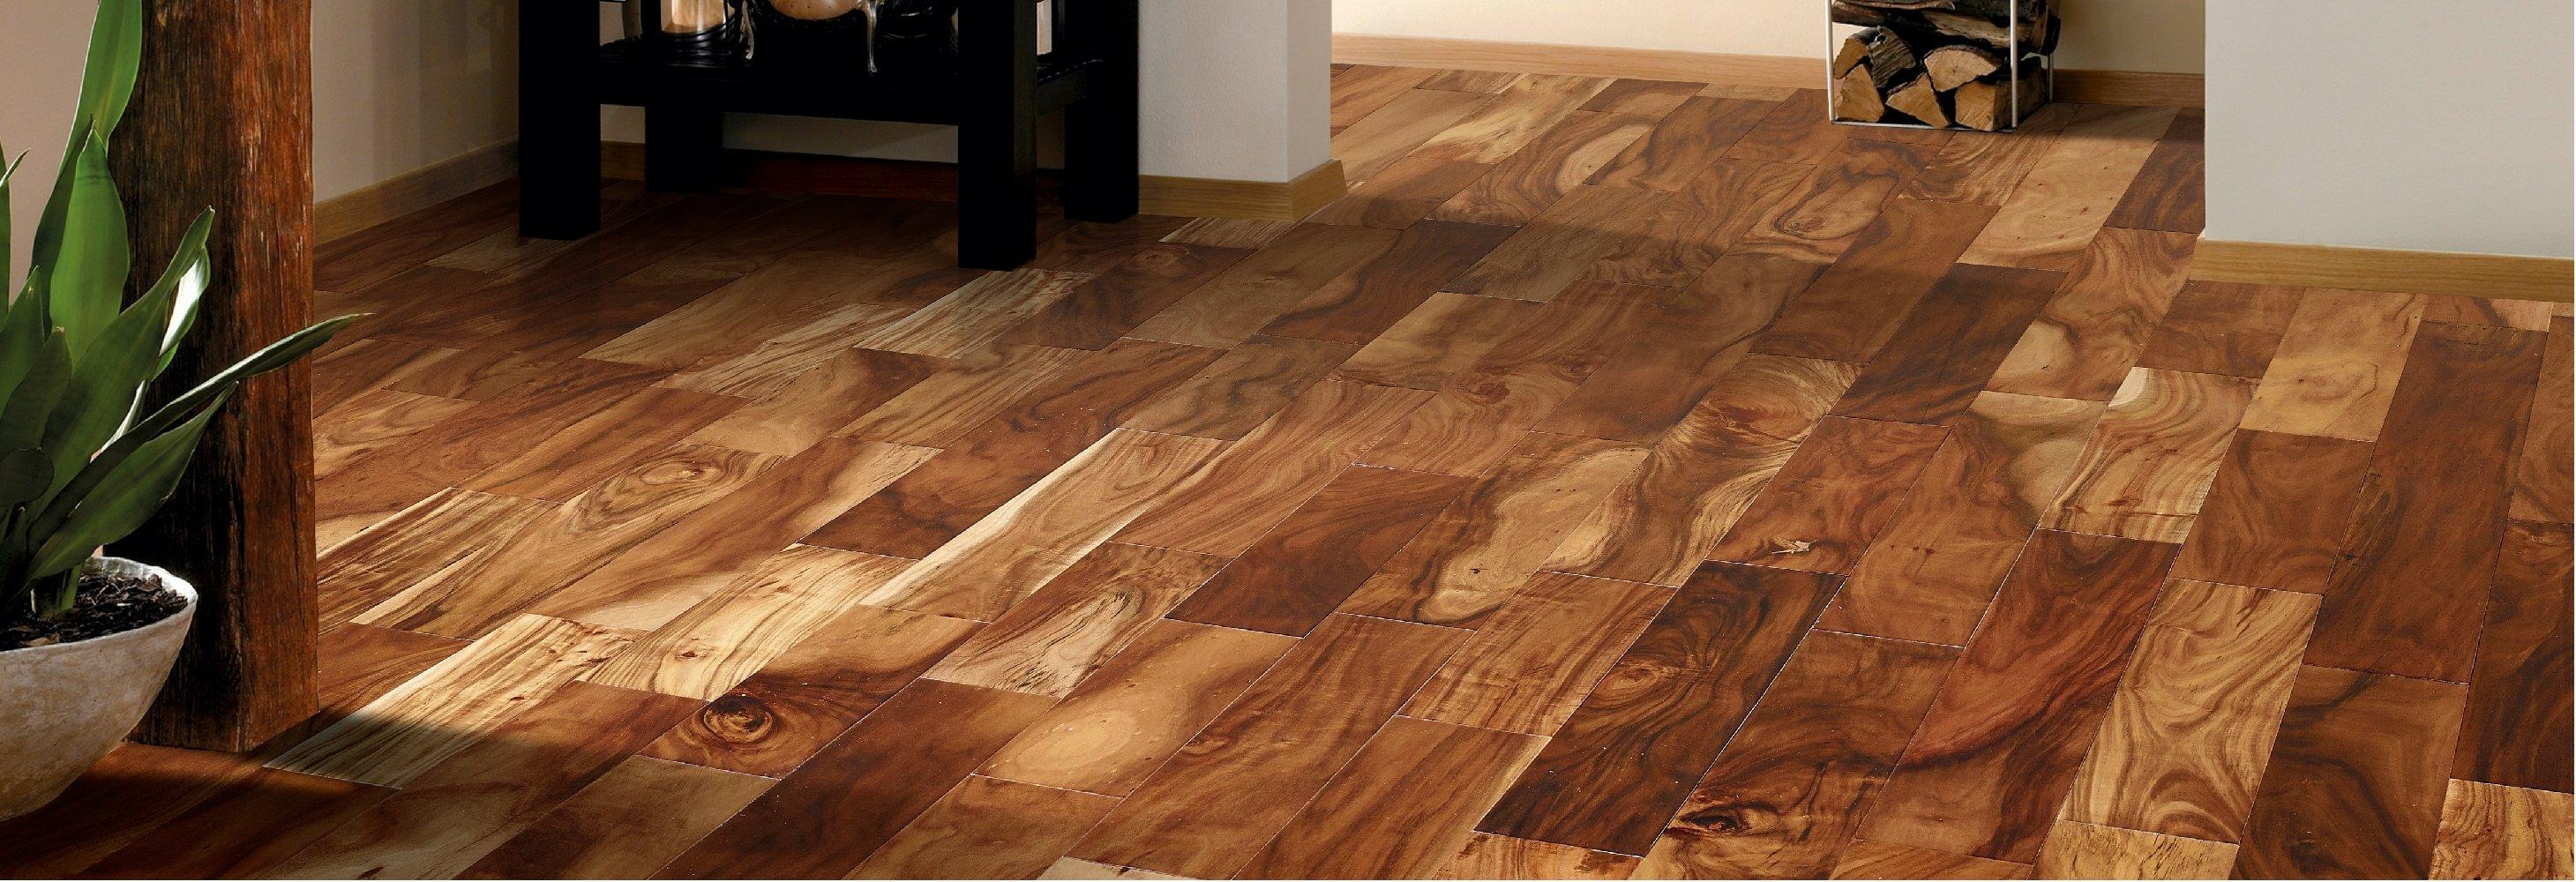 Engineered floor engineered hardwood flooring PKUYVVO